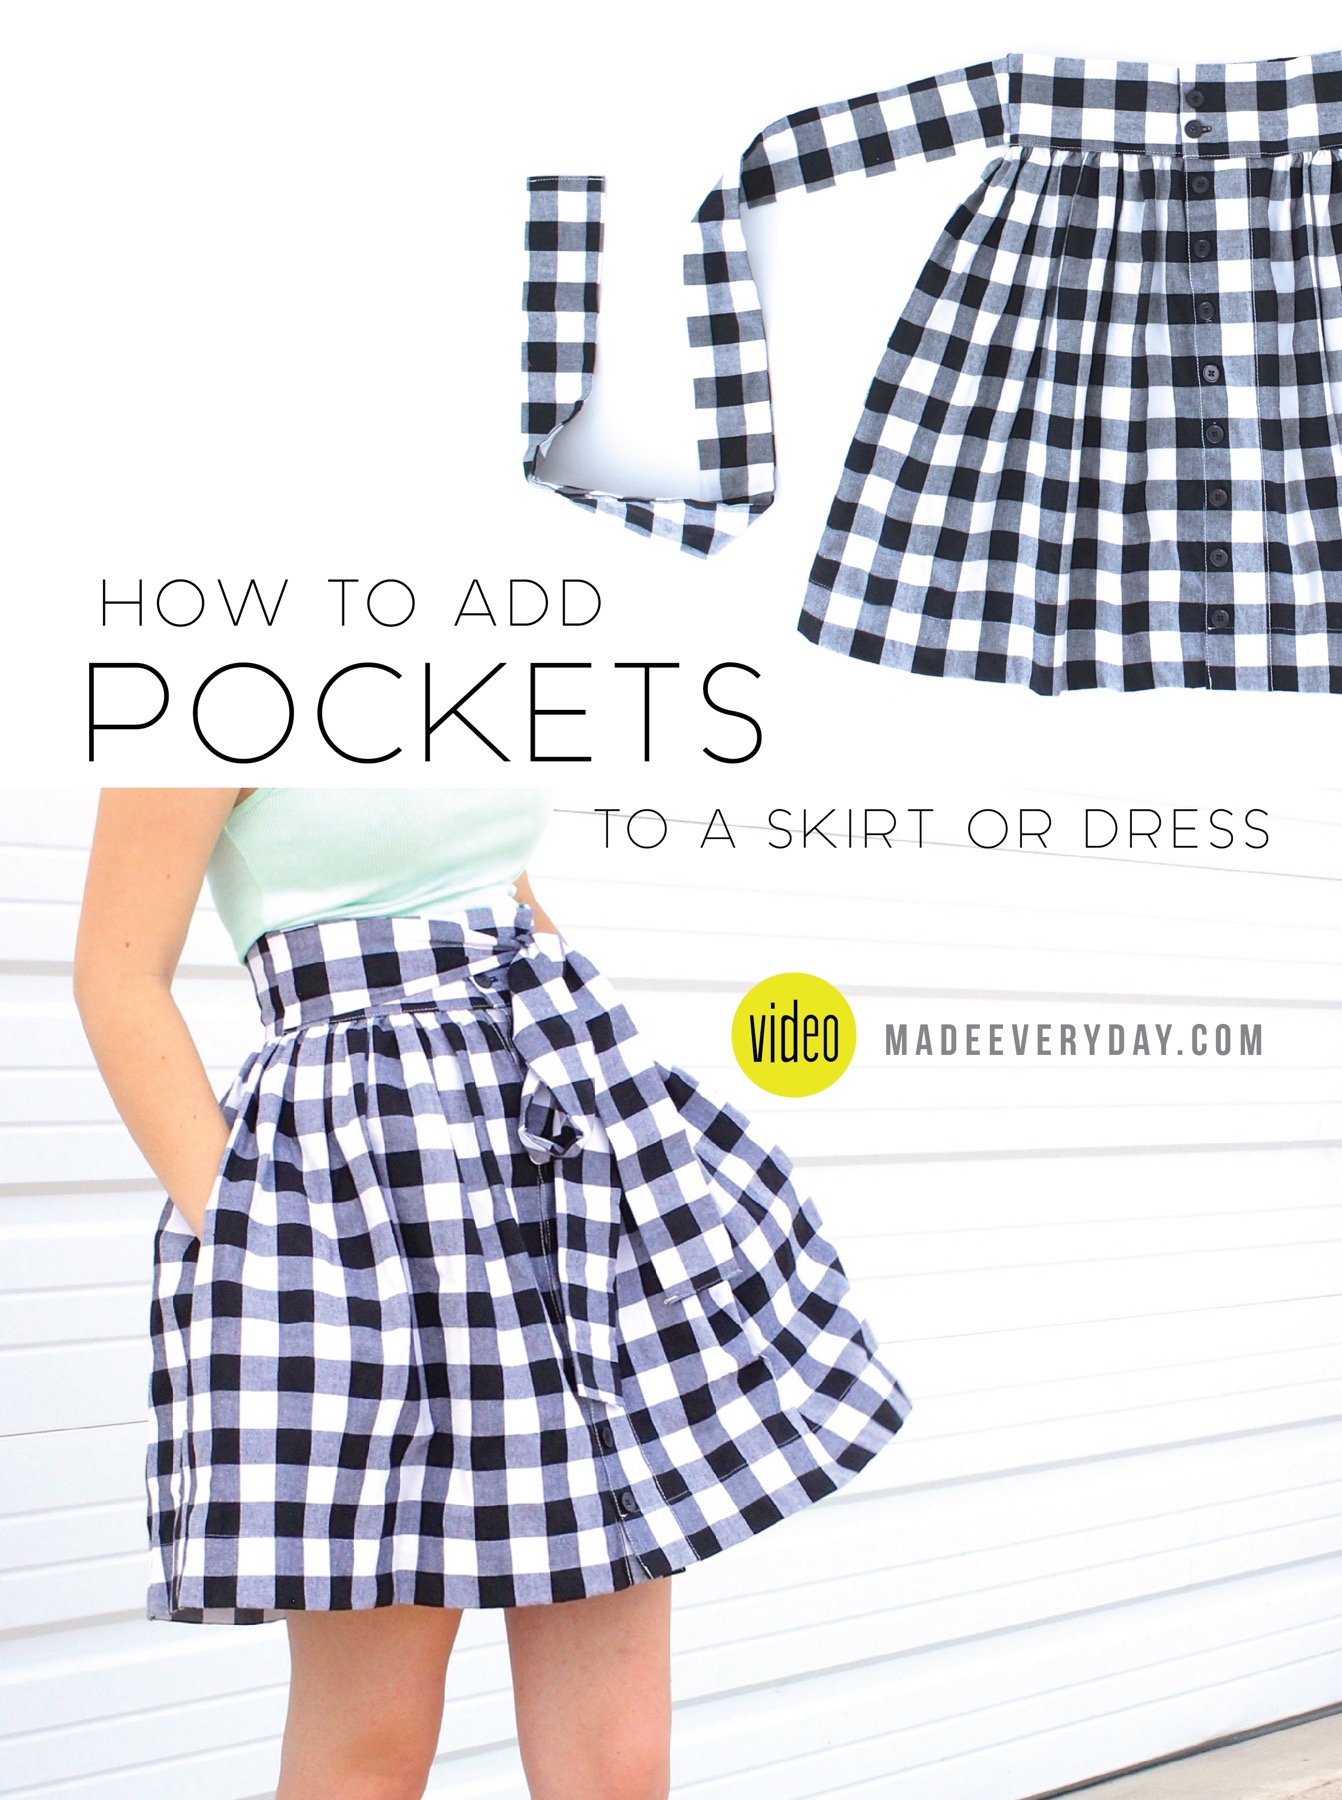 Adding Pockets – MADE EVERYDAY